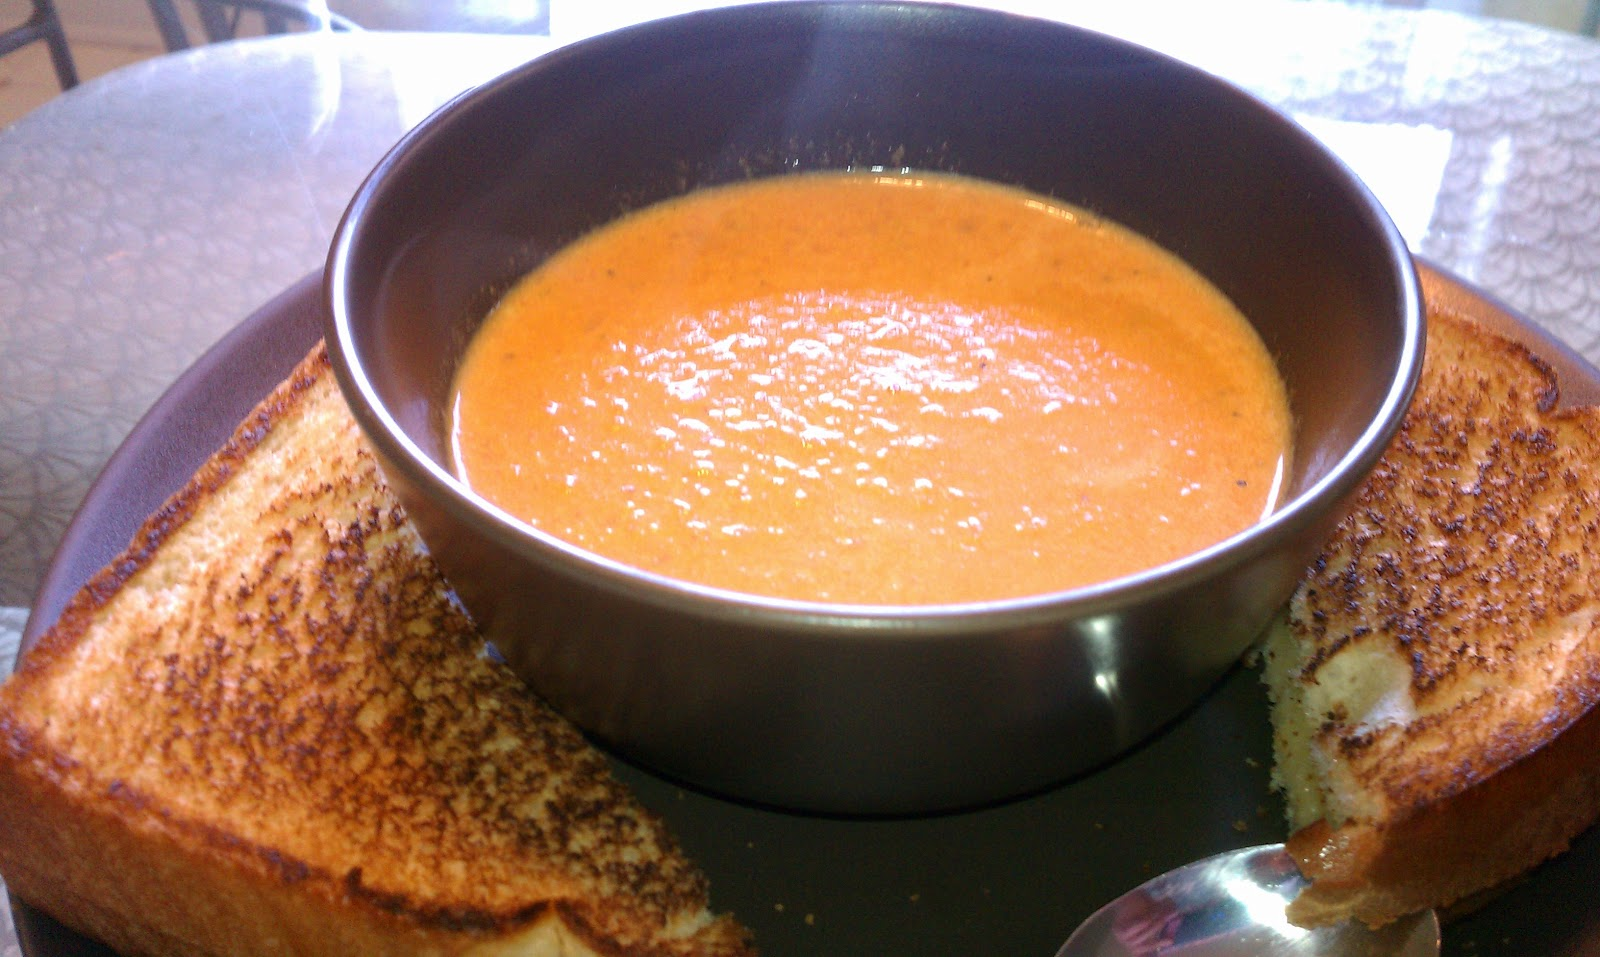 The Maternal FoodieCreamy tomato bisque with a kick